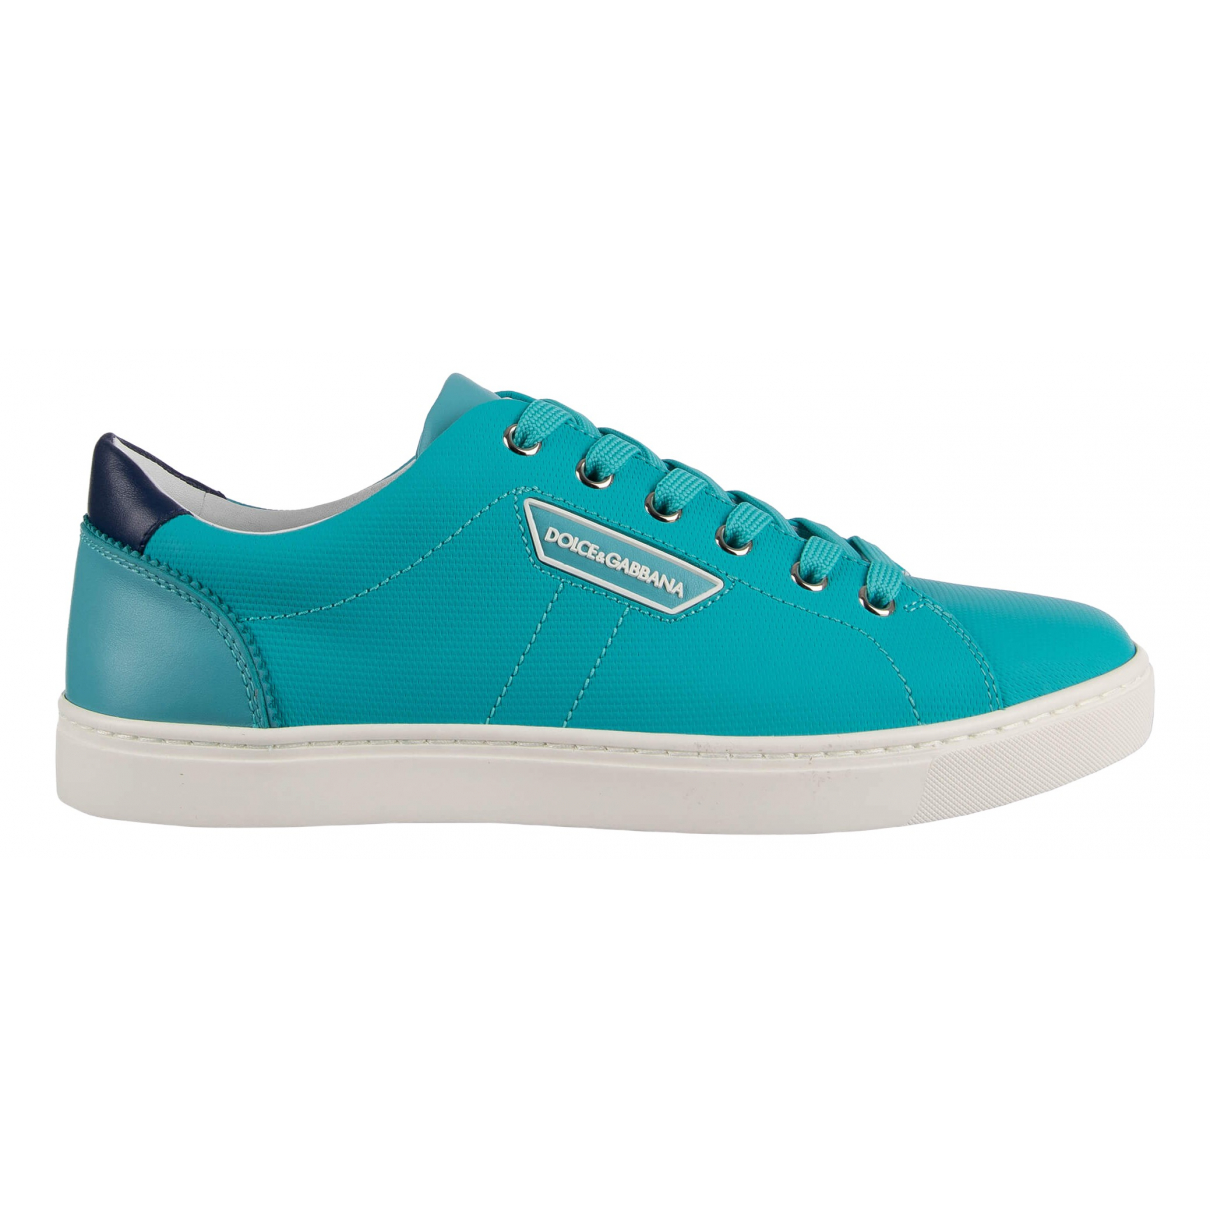 Dolce & Gabbana \N Turquoise Leather Trainers for Men 45 EU